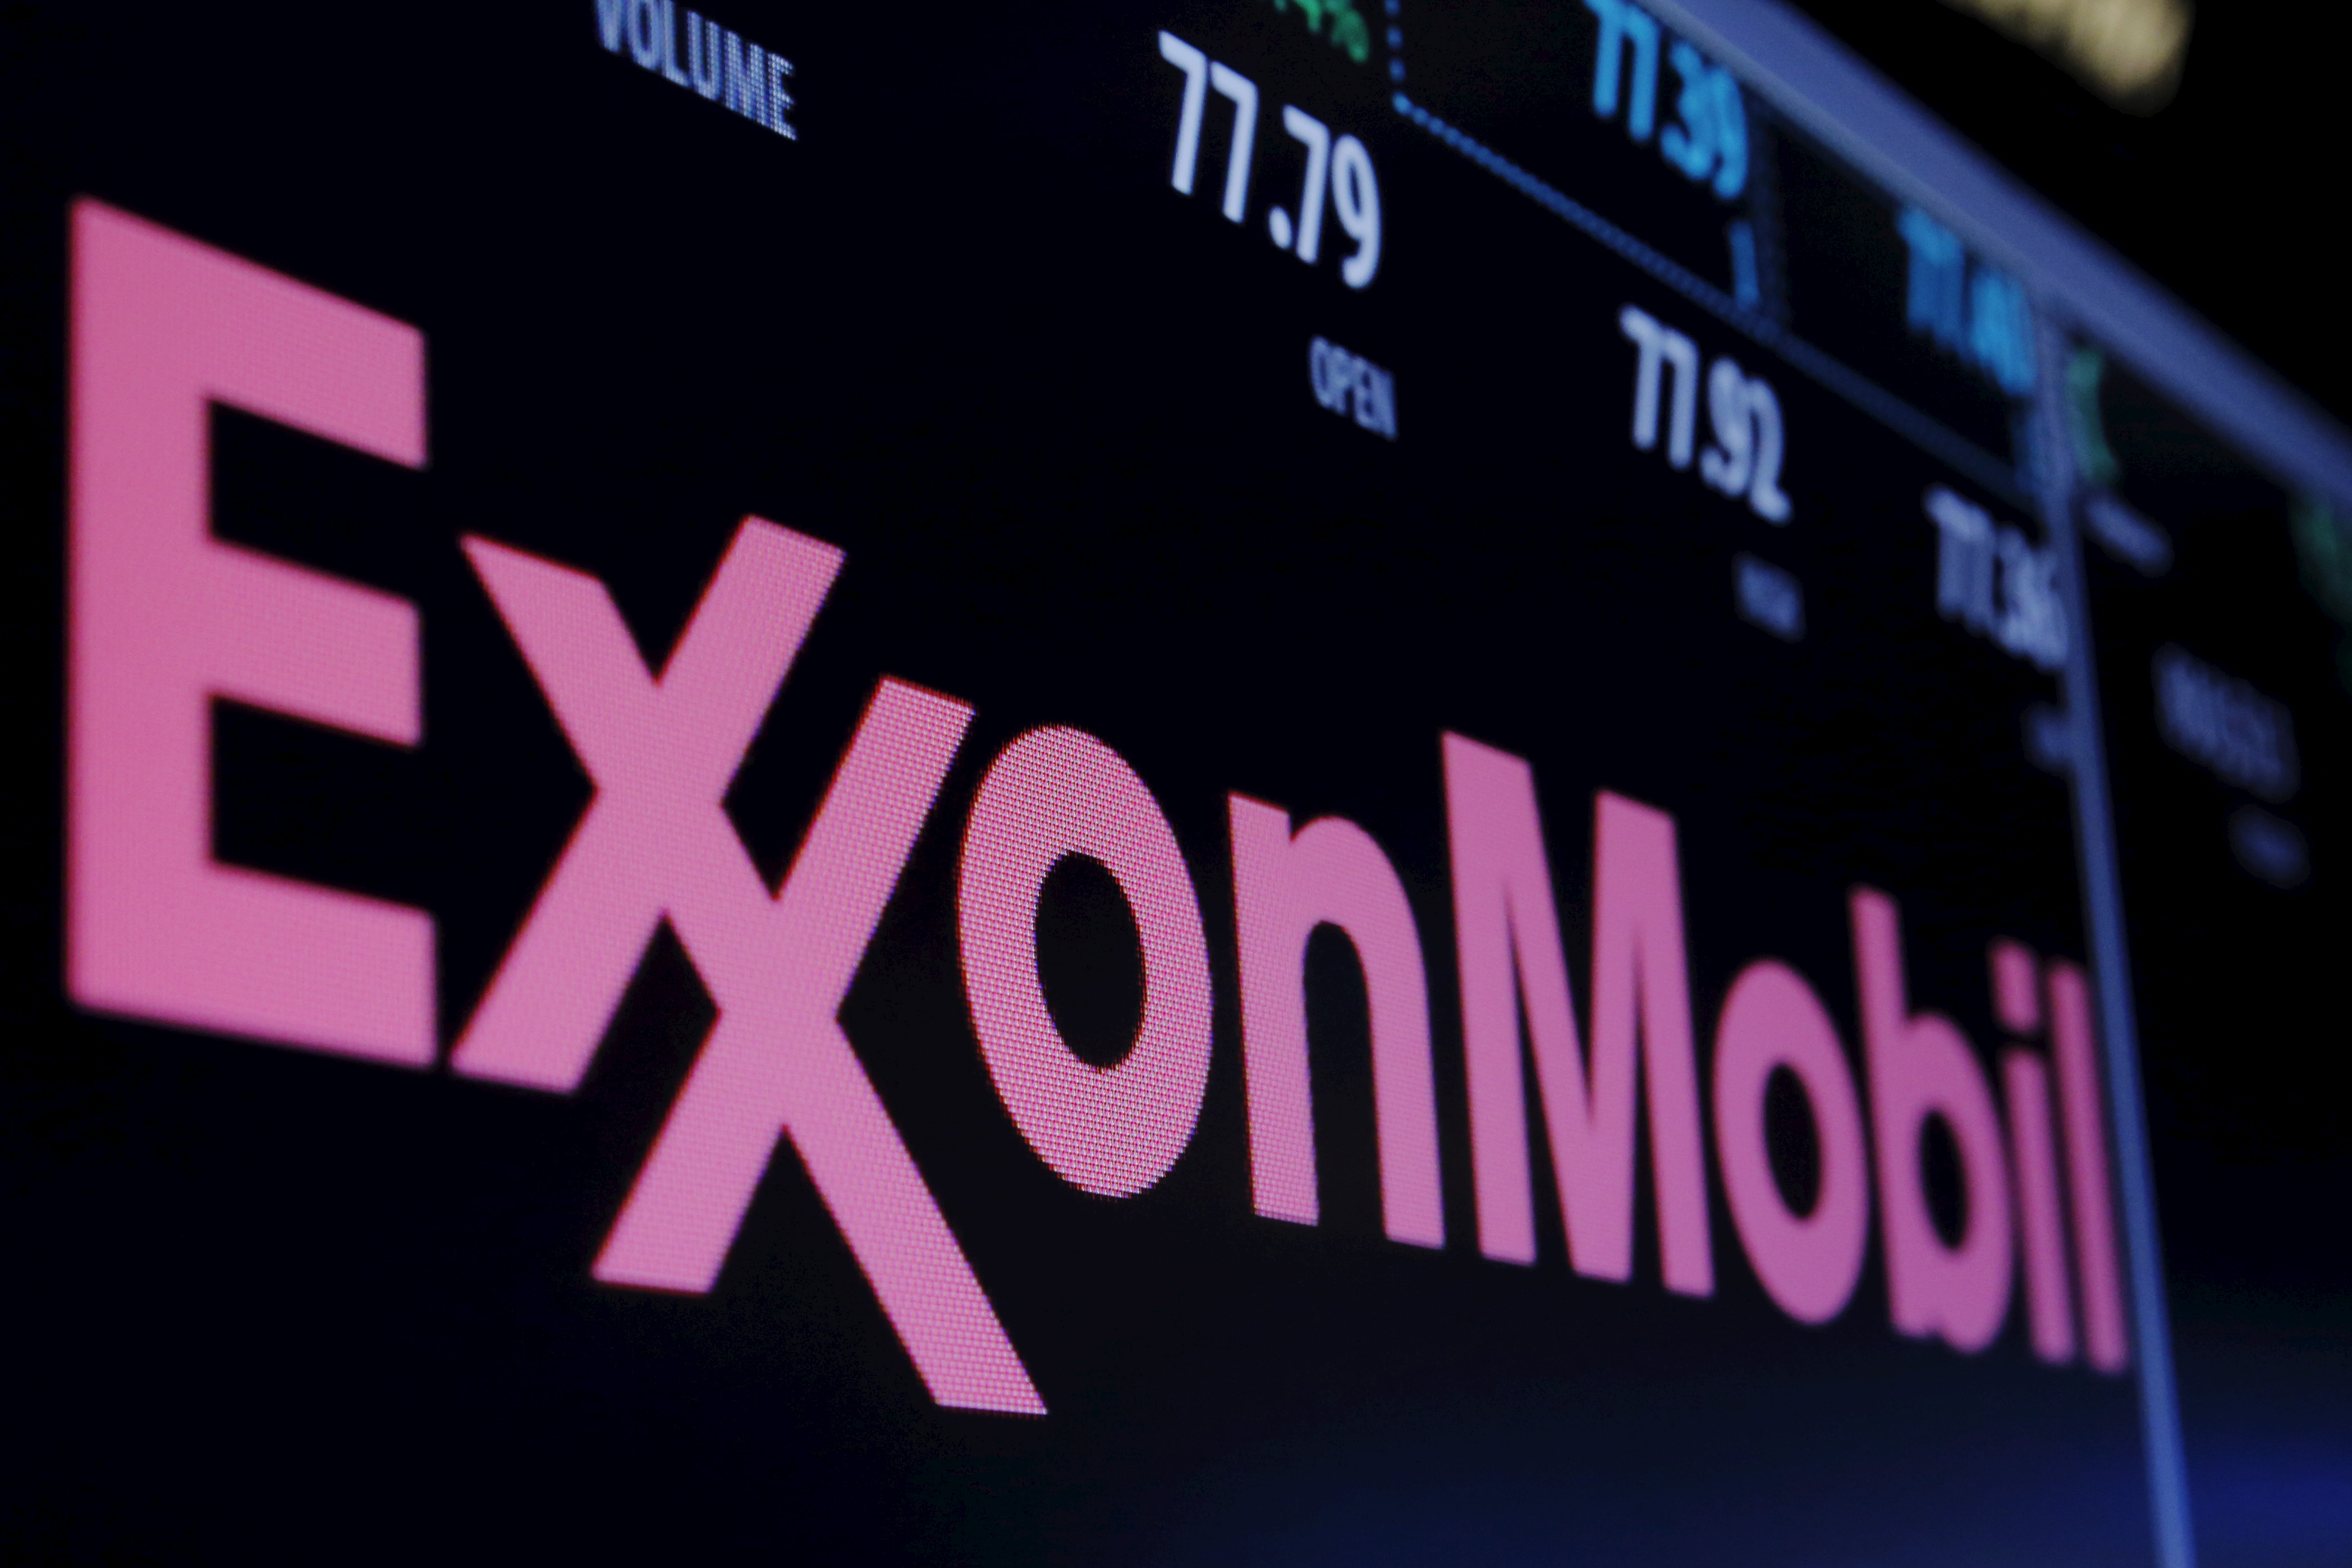 The Exxon logo is displayed agove the floor of the New York Stock Exchange (NYSE) shortly after the opening bell in New York